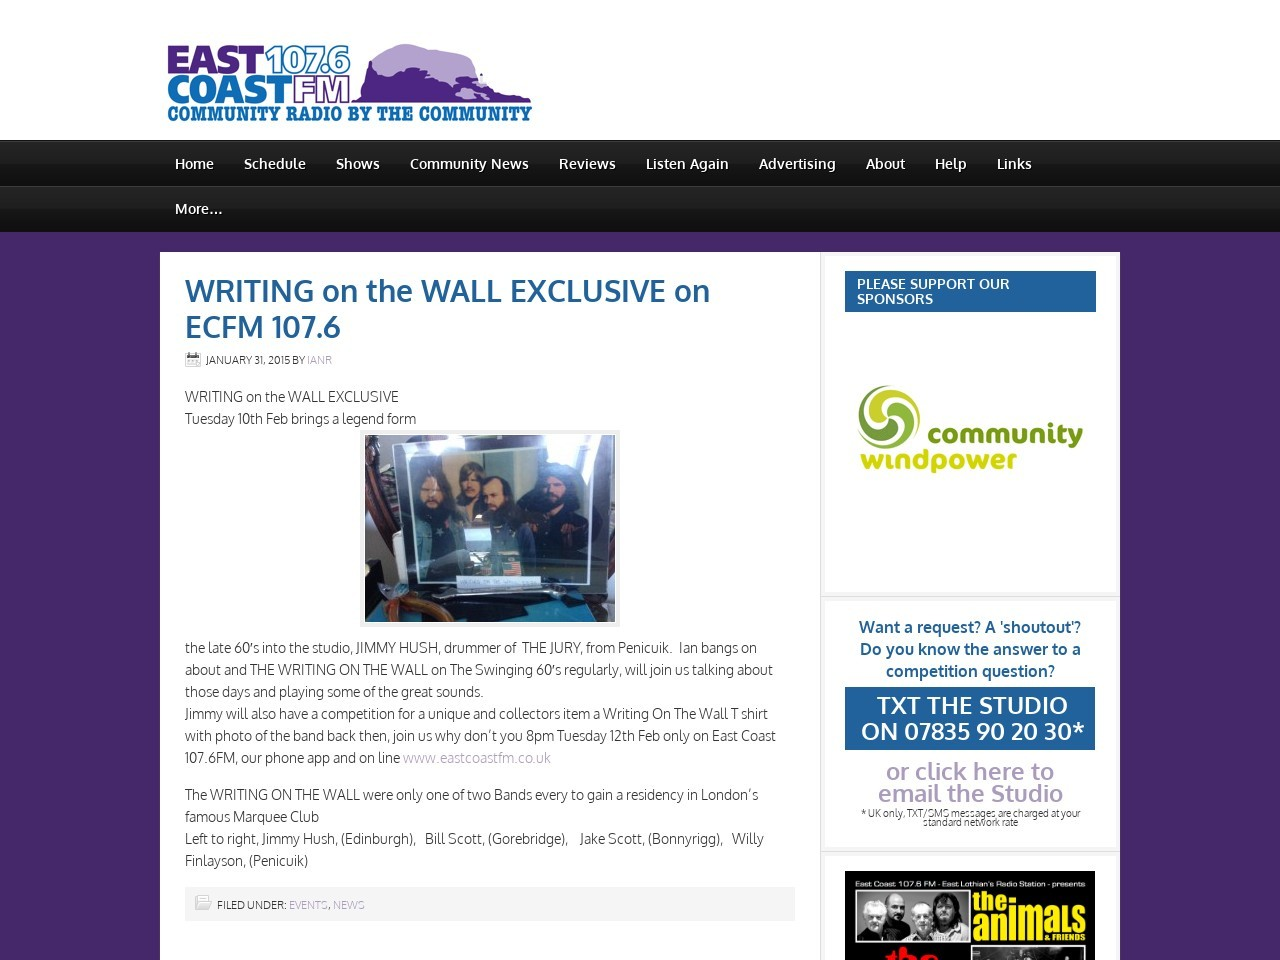 WRITING on the WALL EXCLUSIVE on ECFM 107.6